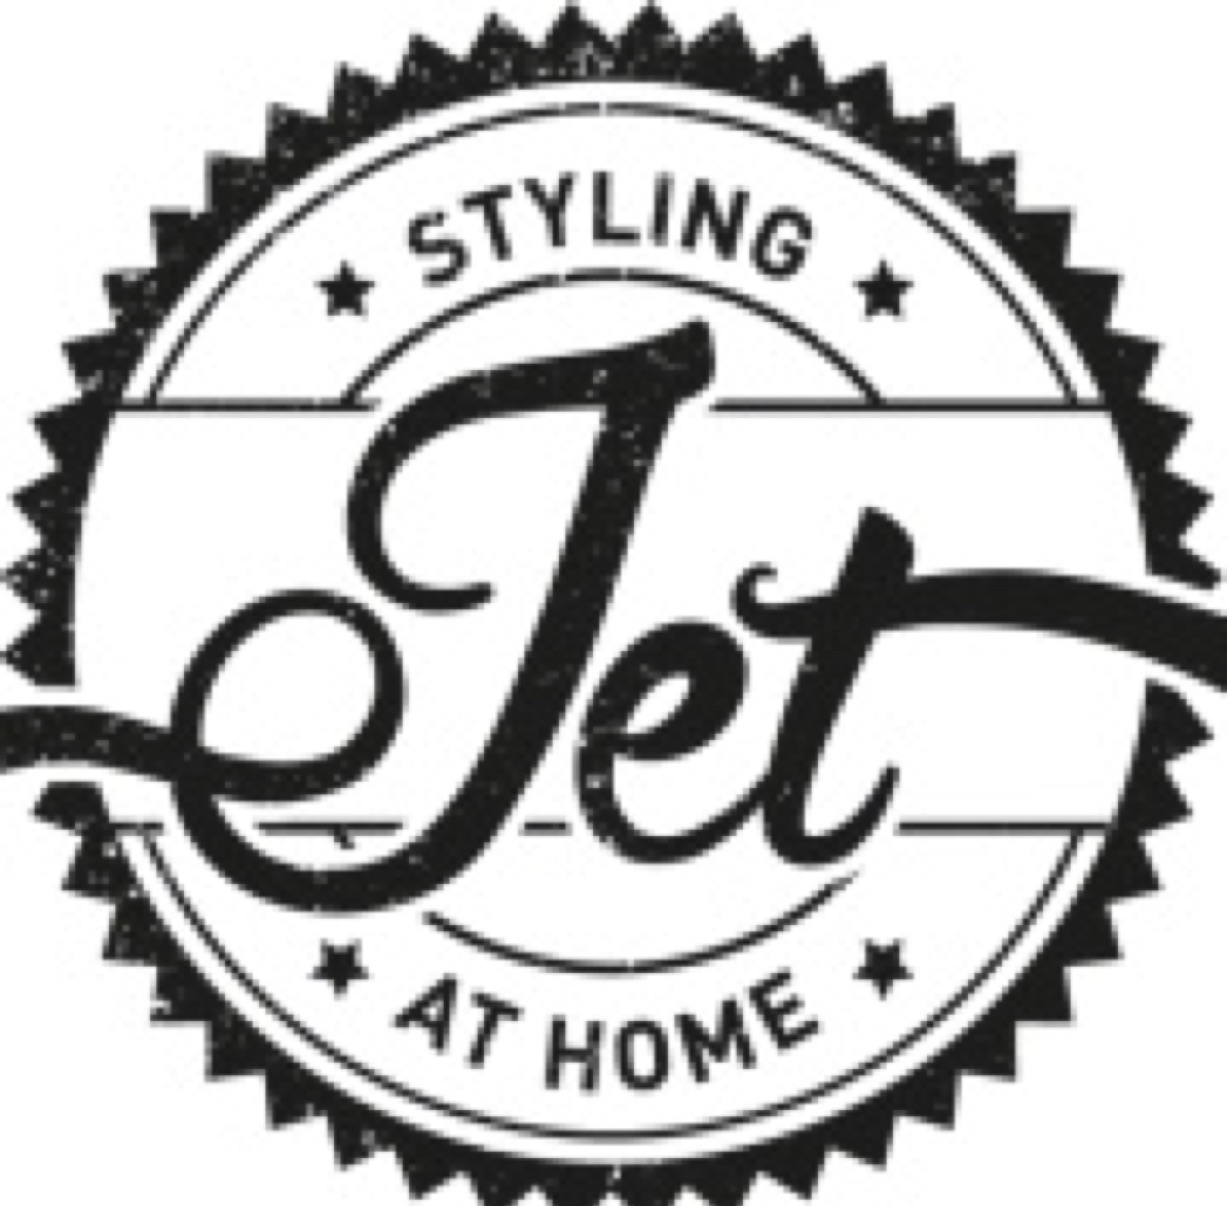 jet_at_home